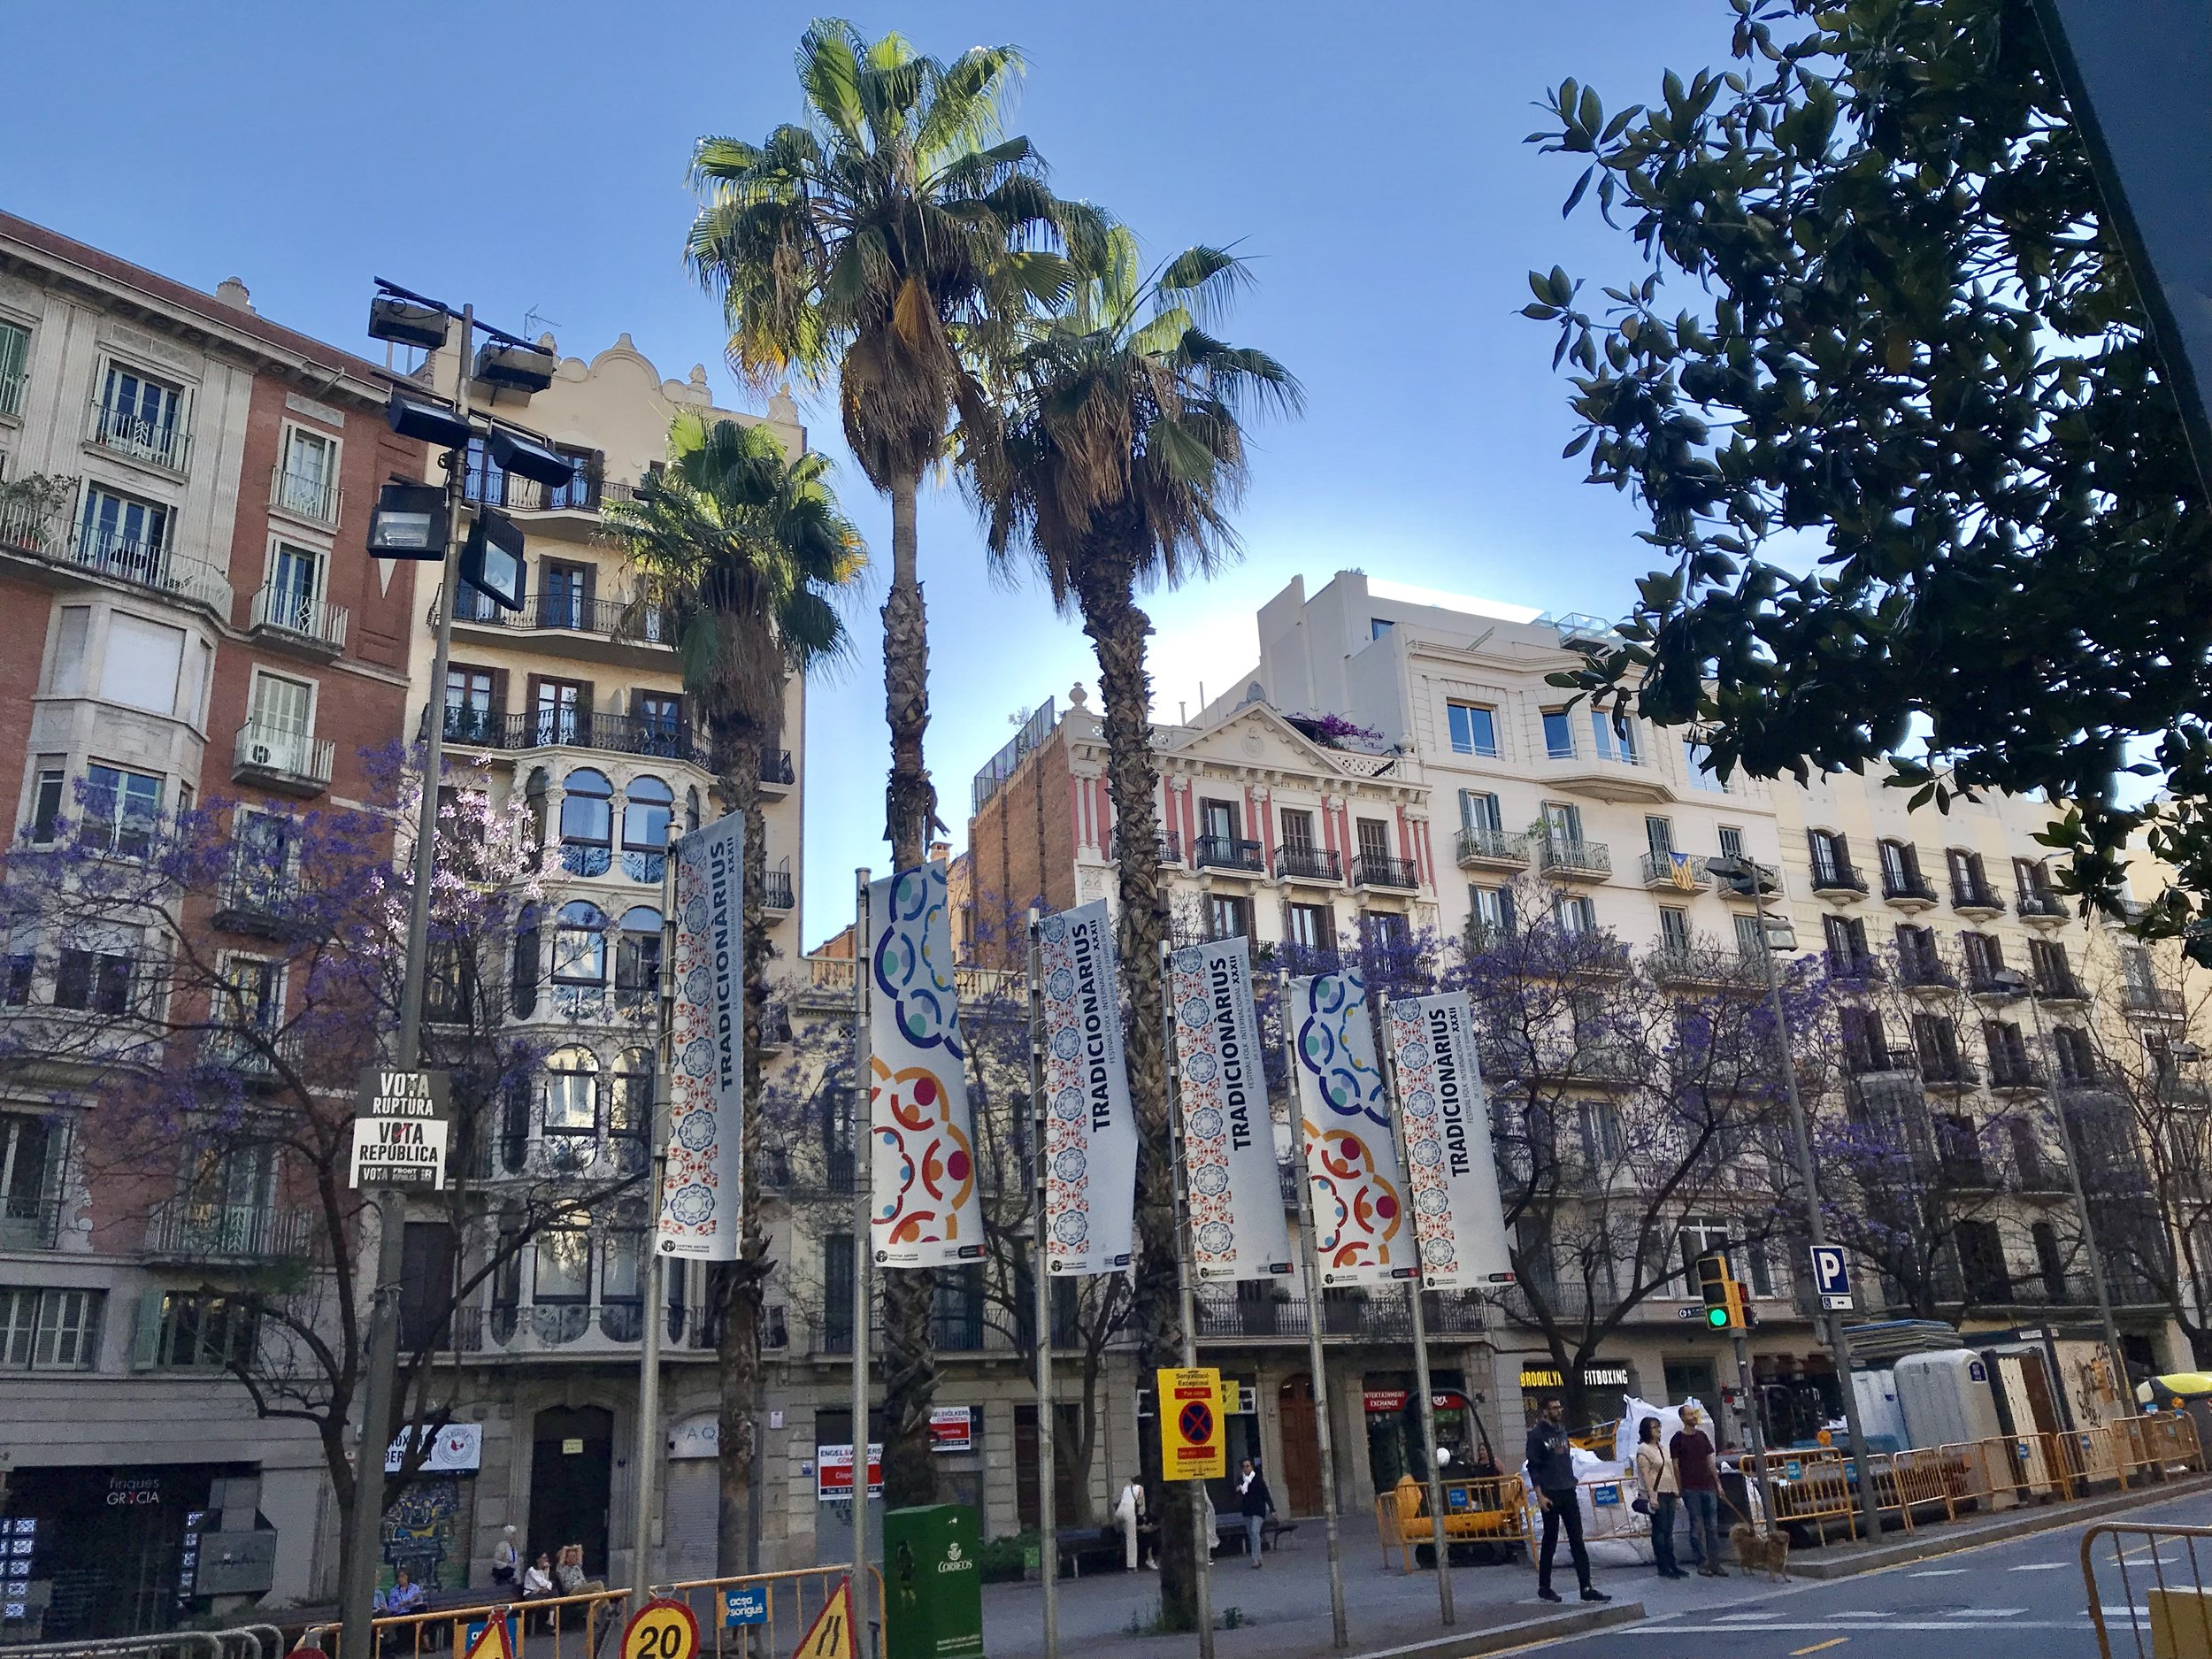 First impressions of Barcelona on day #1 with incredible light!